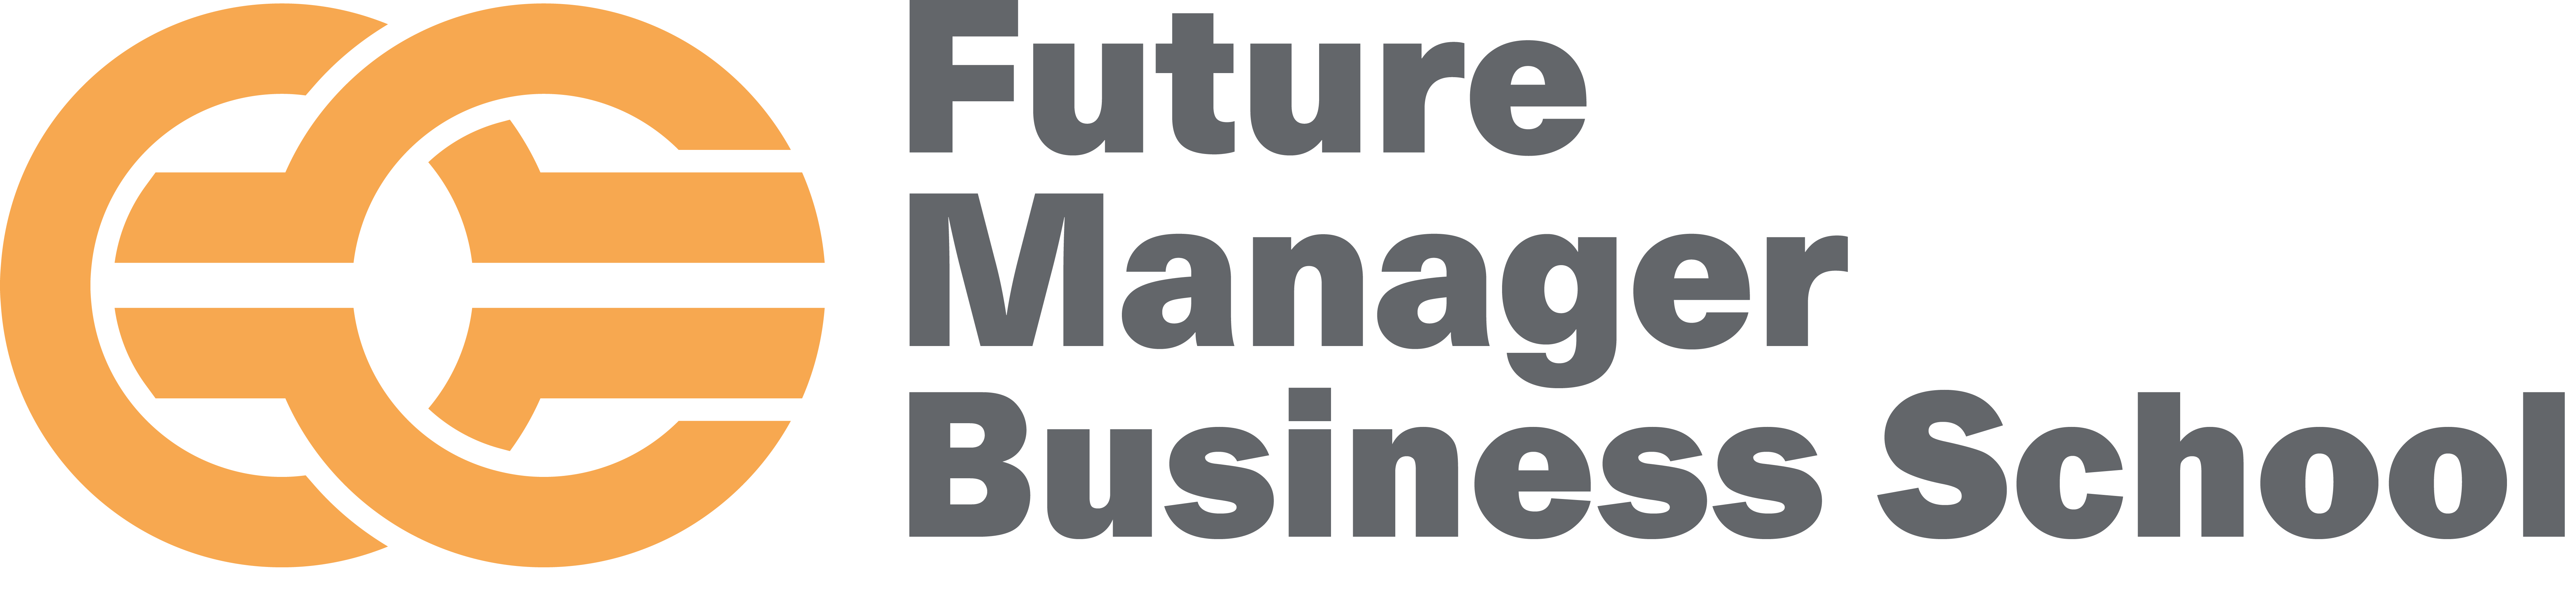 Future Manager Business School